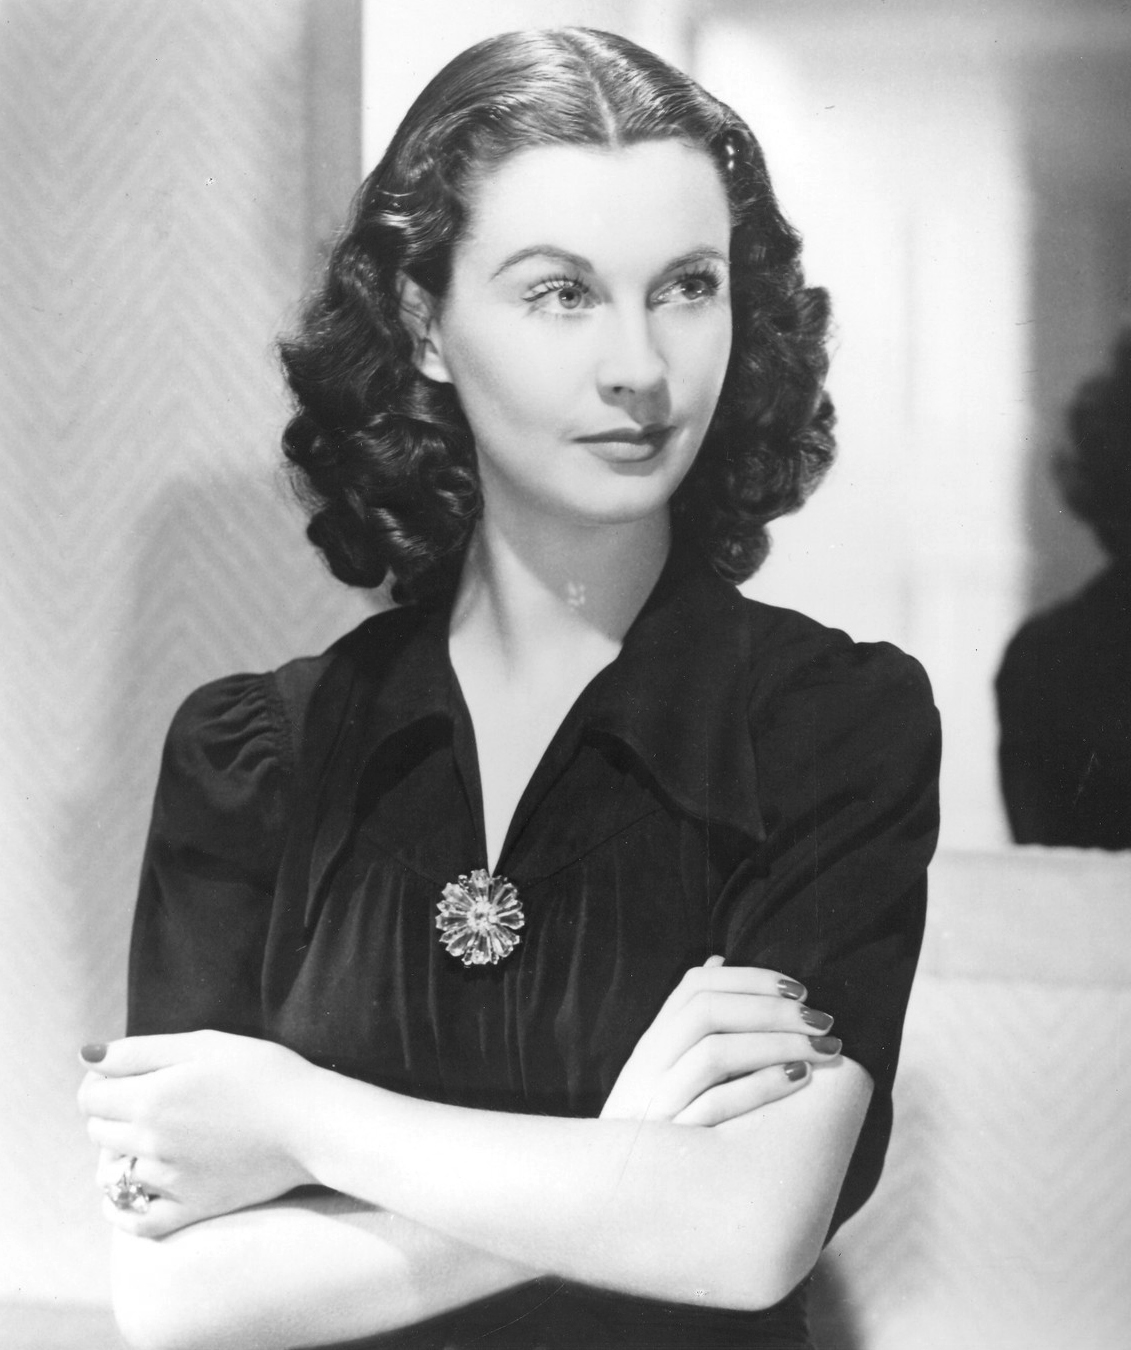 It's The Pictures That Got Small ...: THE THURSDAY GLAMOUR 15!Isabel Jeans And Vivien Leigh